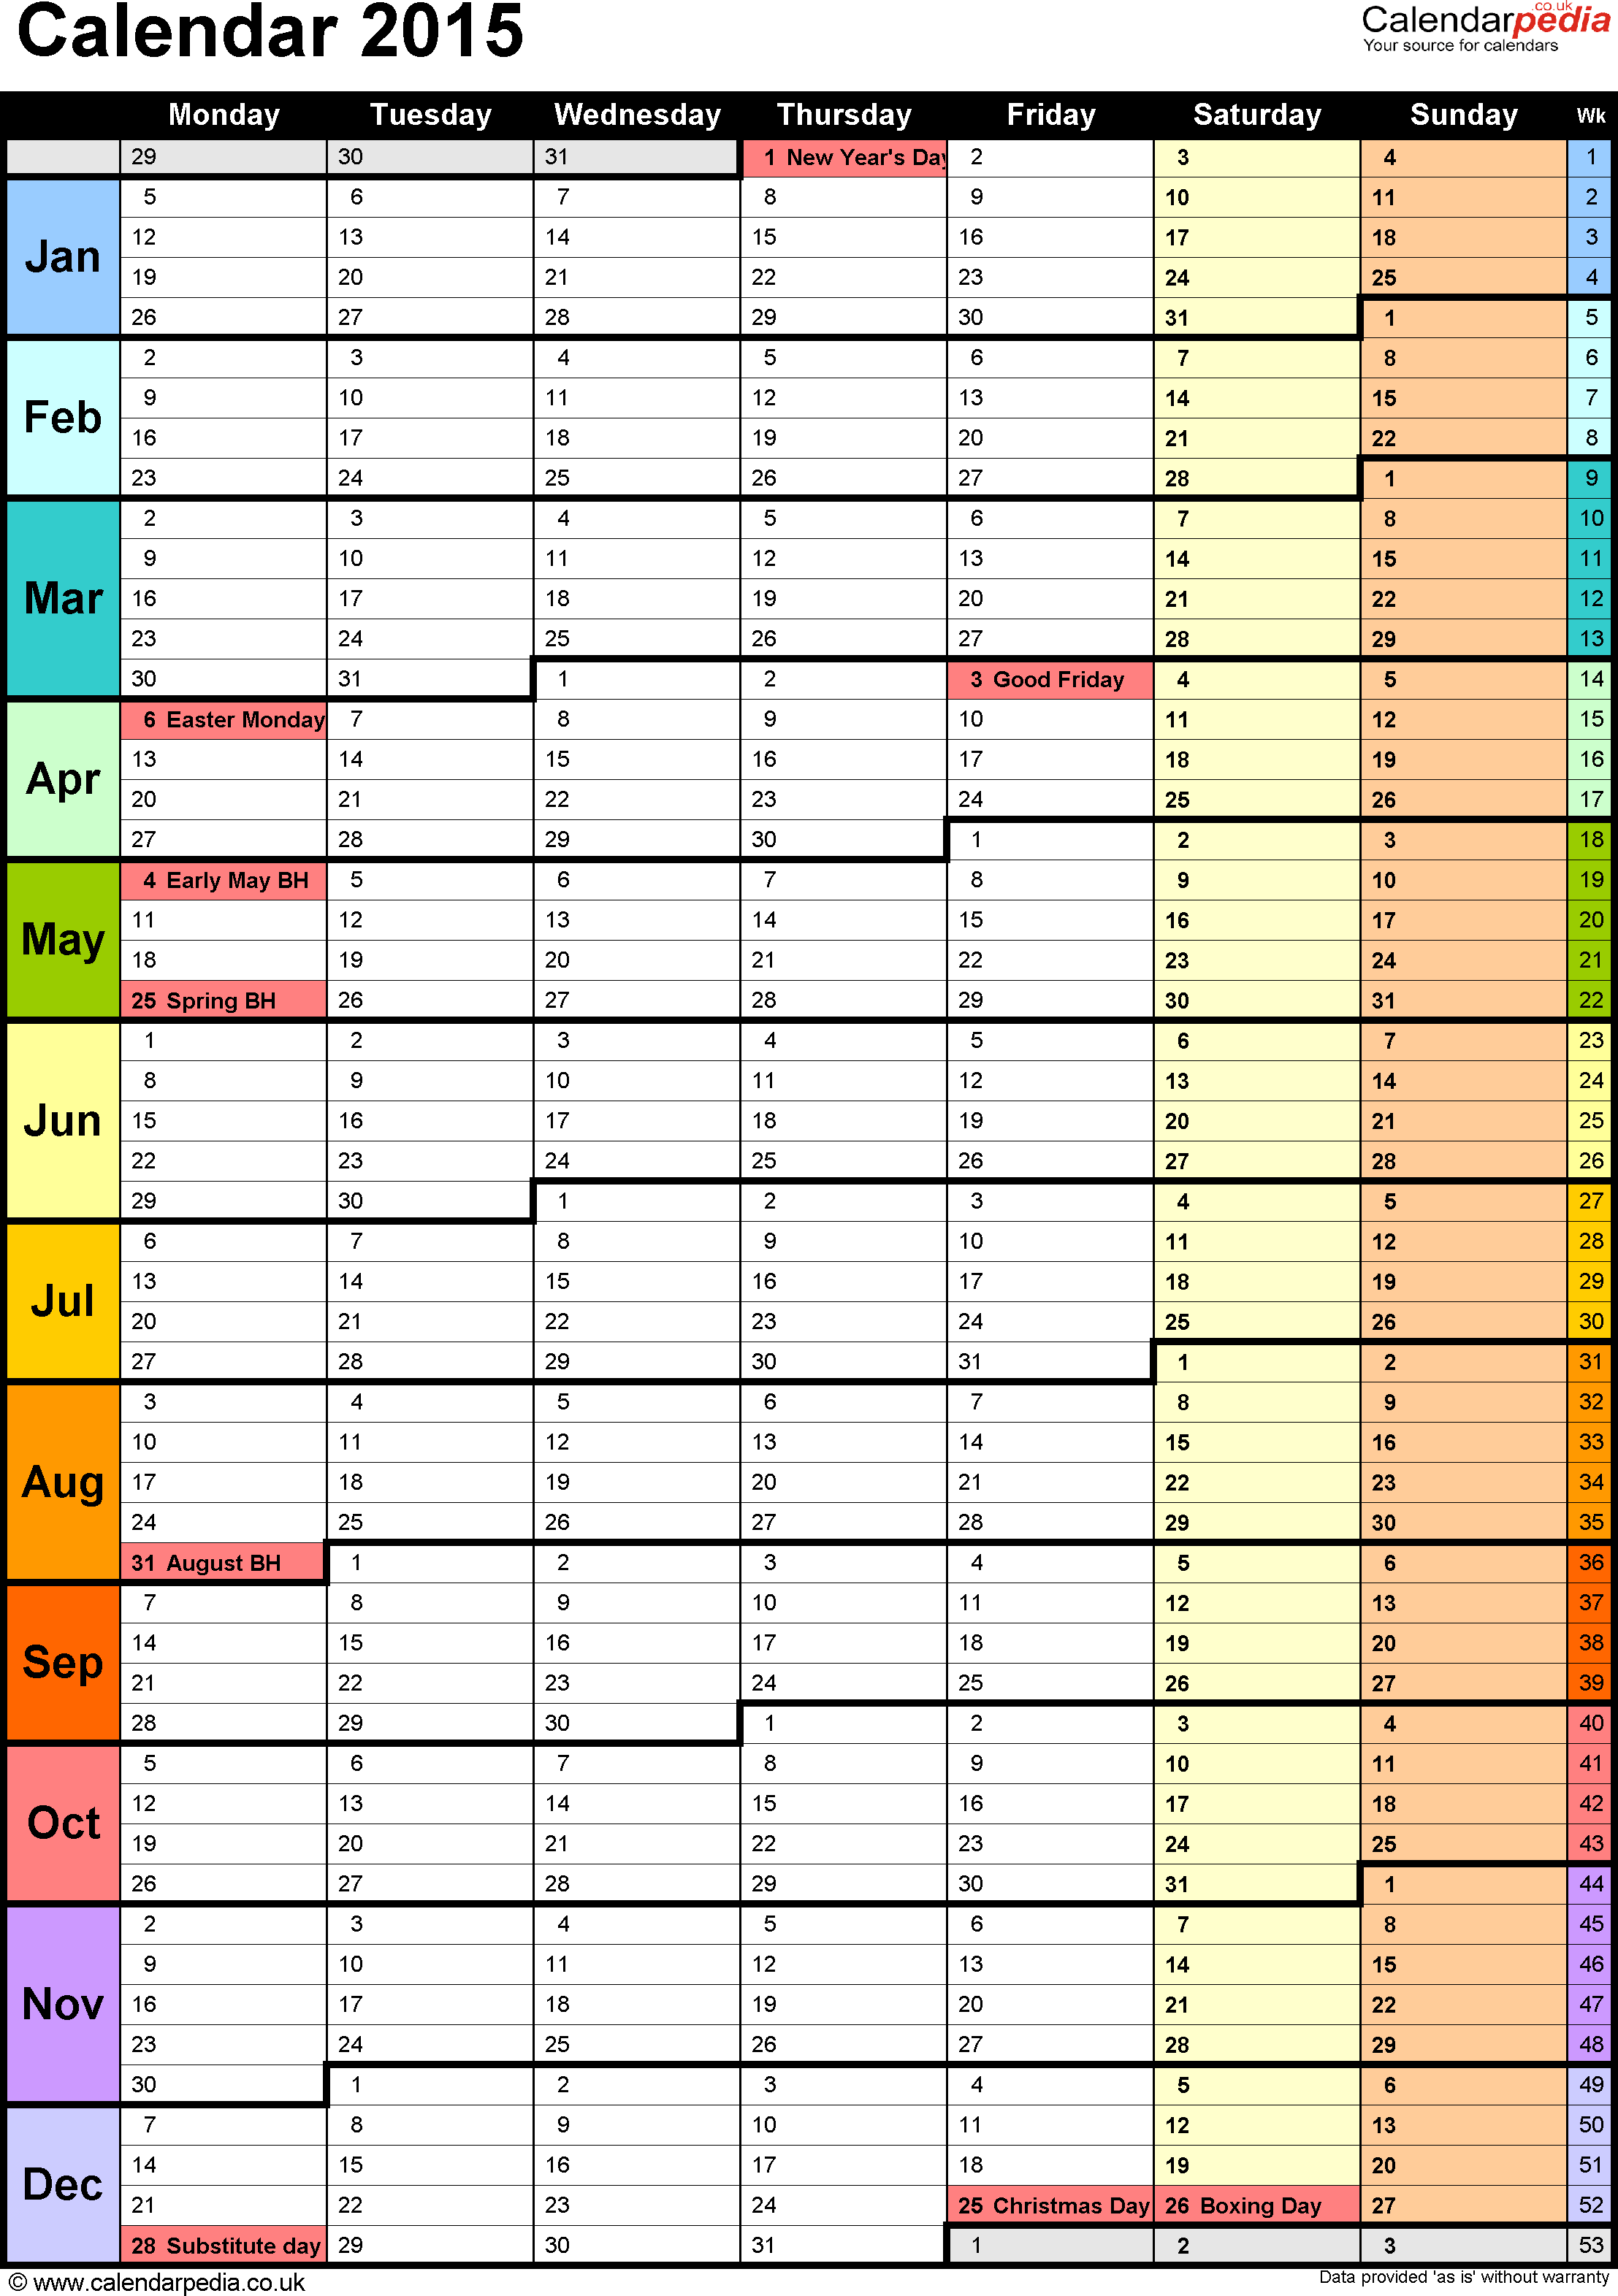 Template 15: Yearly calendar 2015 as Word template, portrait orientation, 1 page, with UK bank holidays and week numbers, days in continuous flow/rolling layout